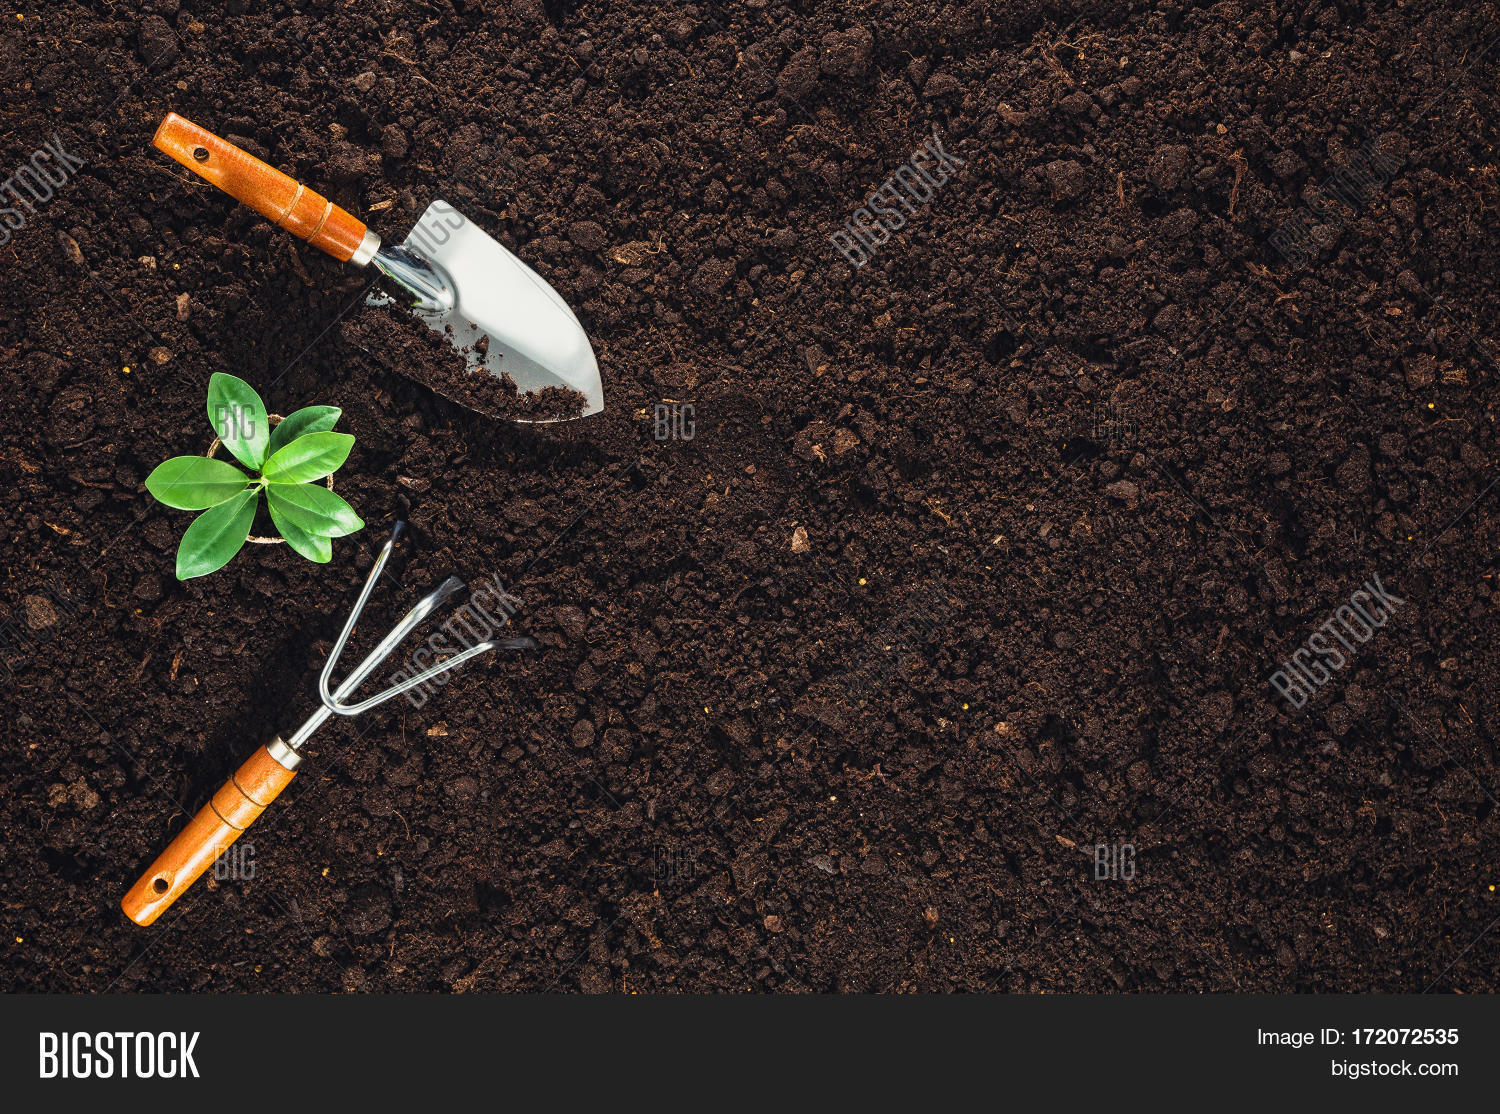 Gardening tools on fertile soil image photo bigstock for Gardening tools used in planting